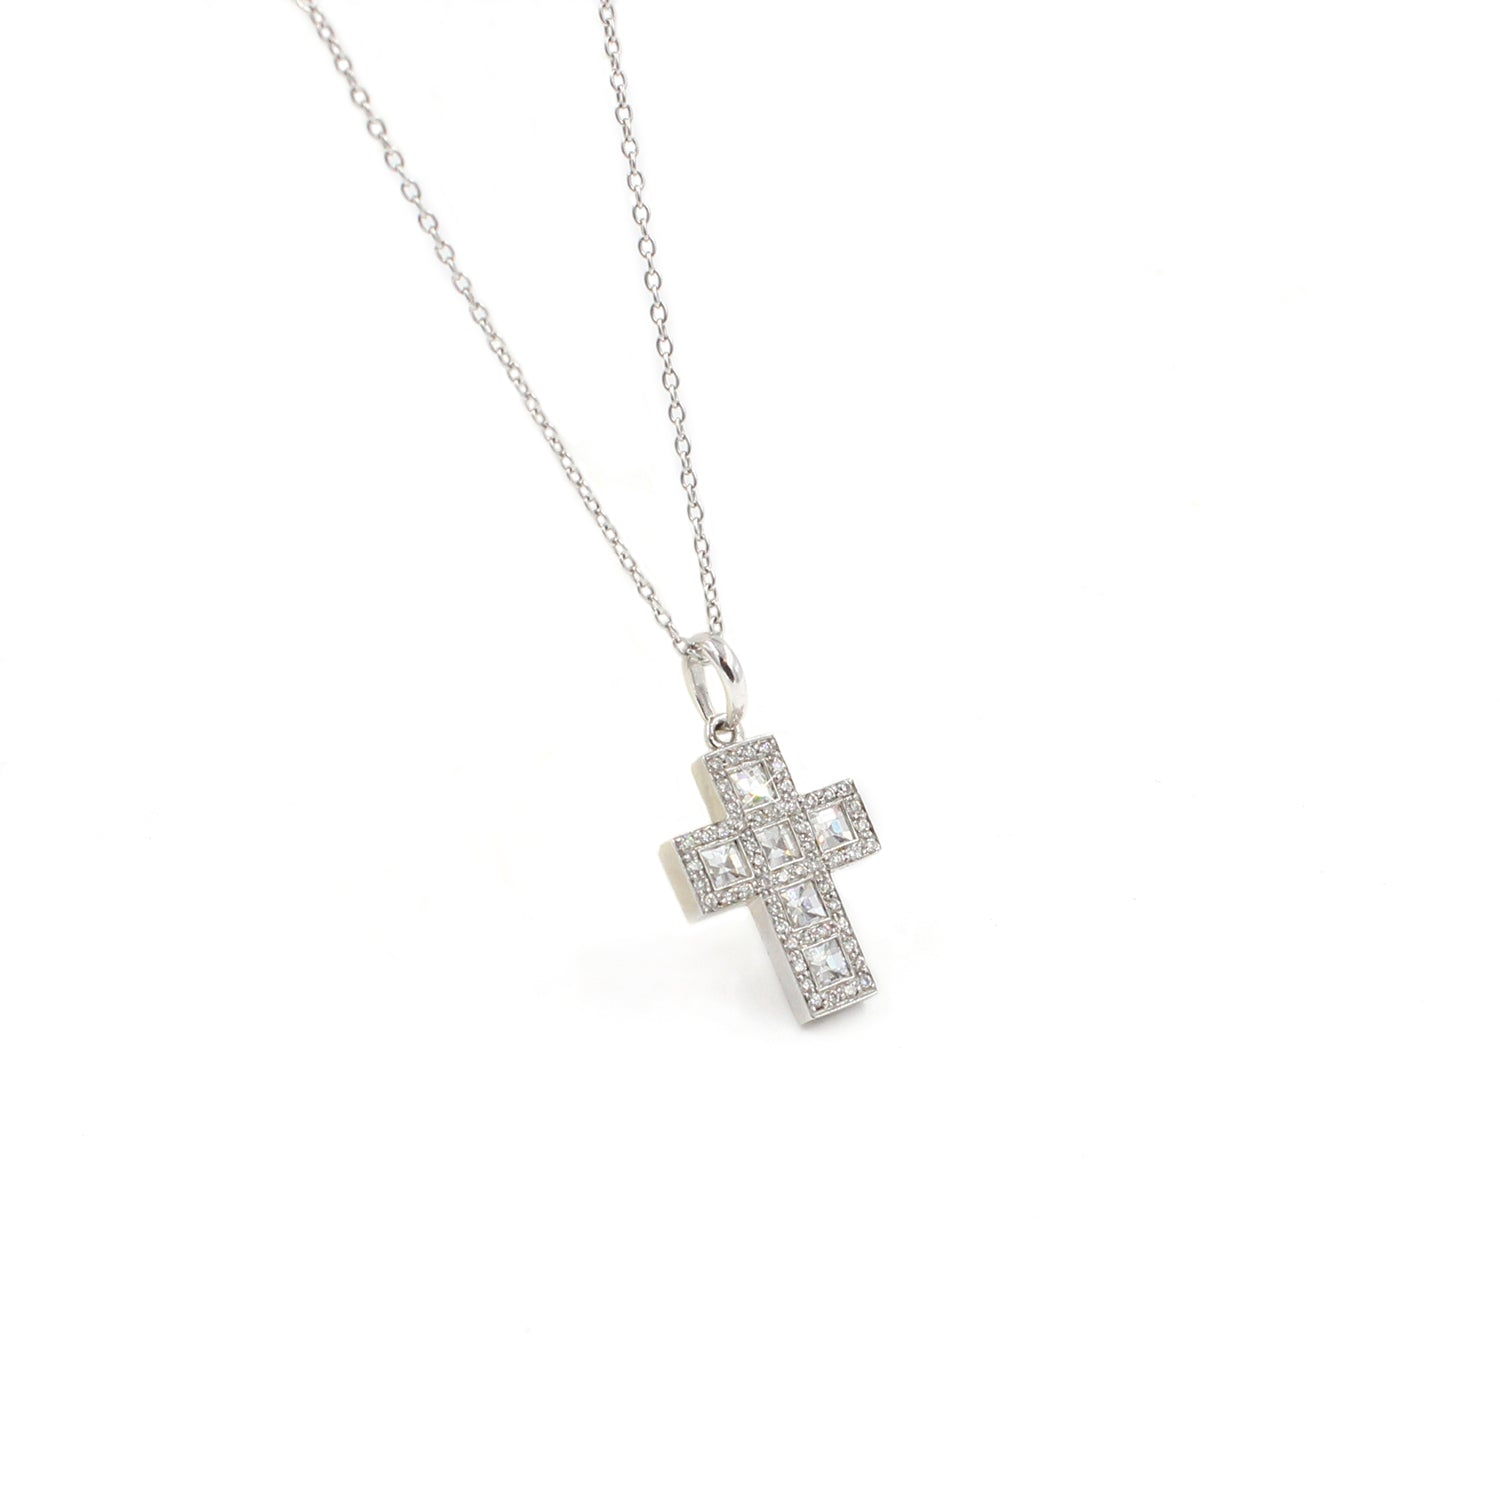 Fine Jewelry Collection: Small Diamond Cross Pendant Necklace